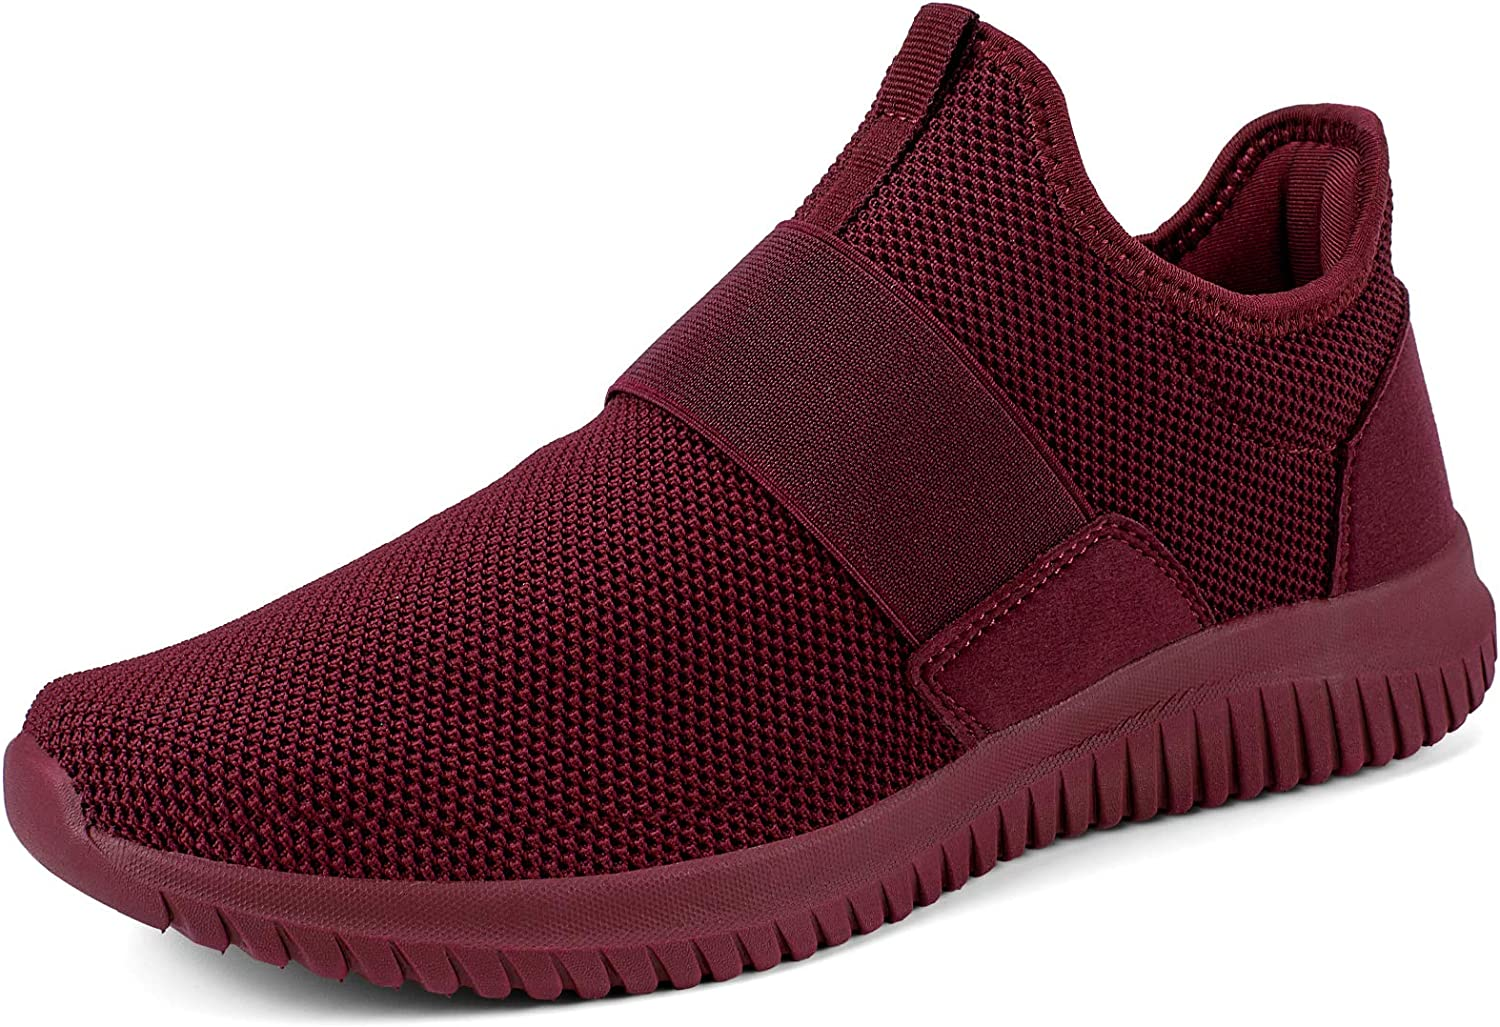 Troadlop Womens Sneakers Lightweight Slip Shoes On Breathable Popular brand Japan's largest assortment in the world